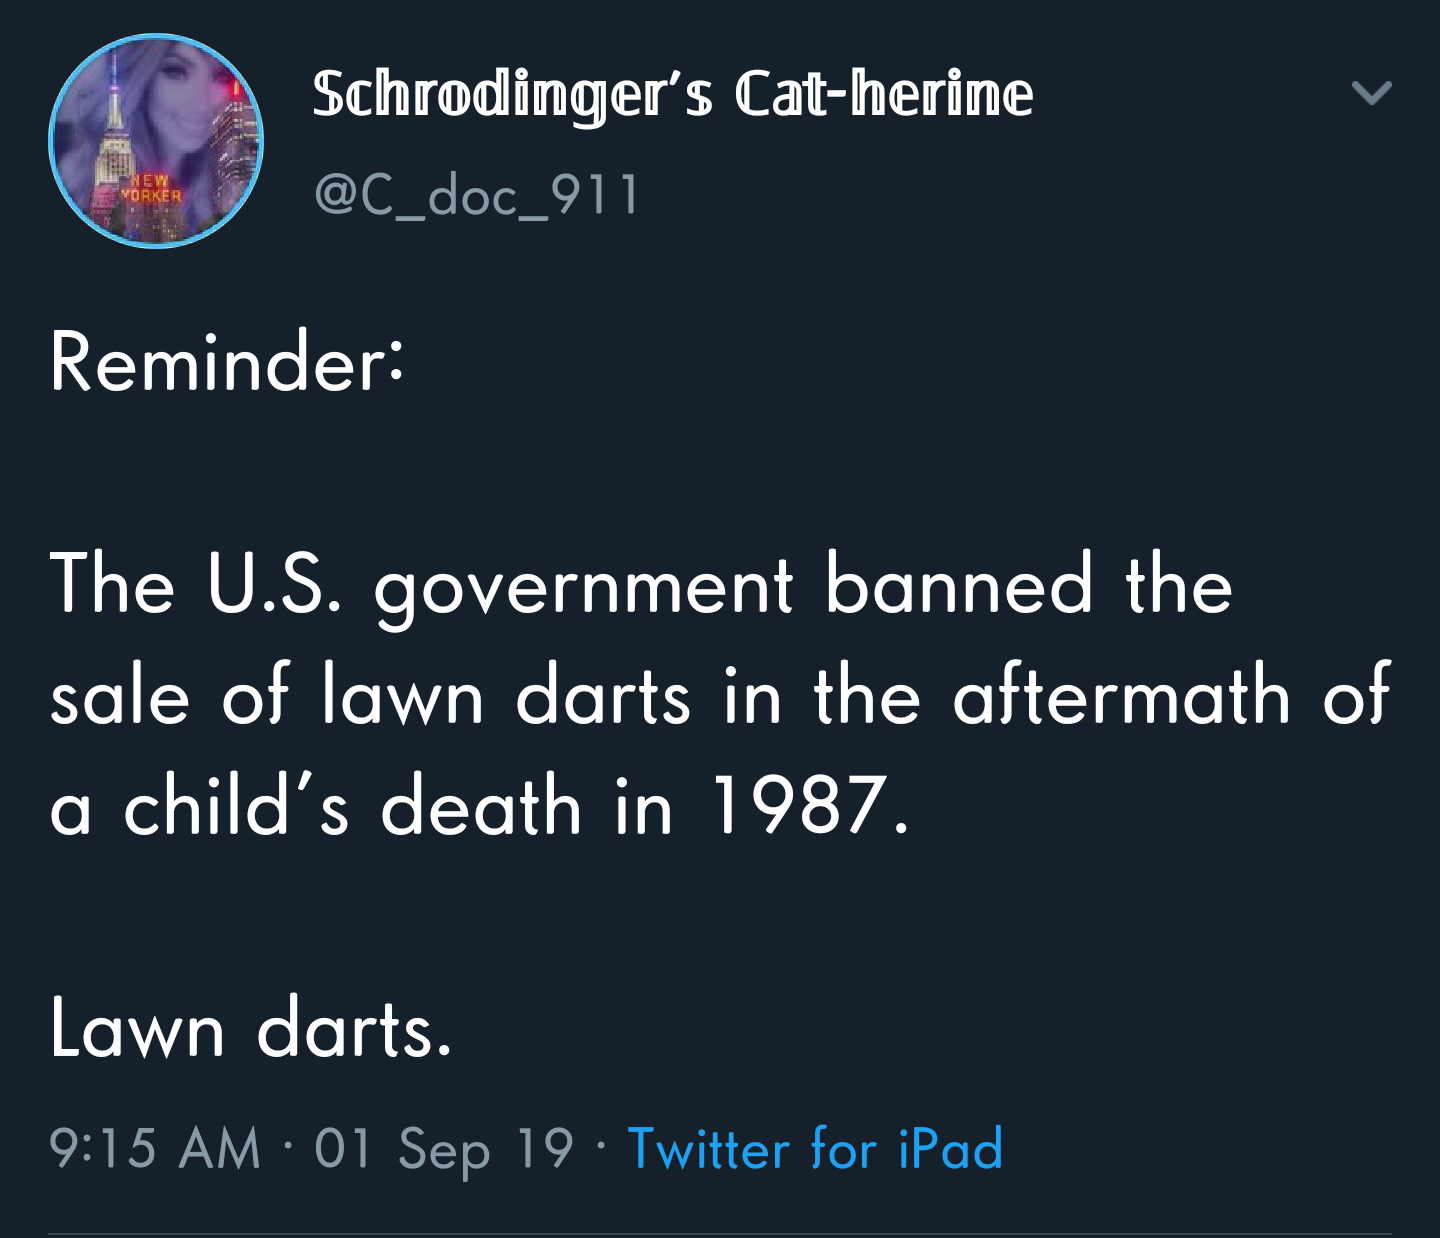 political political-memes political text: Schrodånger's Cat-heråne doc 911 Reminder: The U.S. government banned the sale of lawn darts in the aftermath of a child's death in 1987. Lawn darts. 9:15 AM • 01 Sep 19 • Twitter for iPad